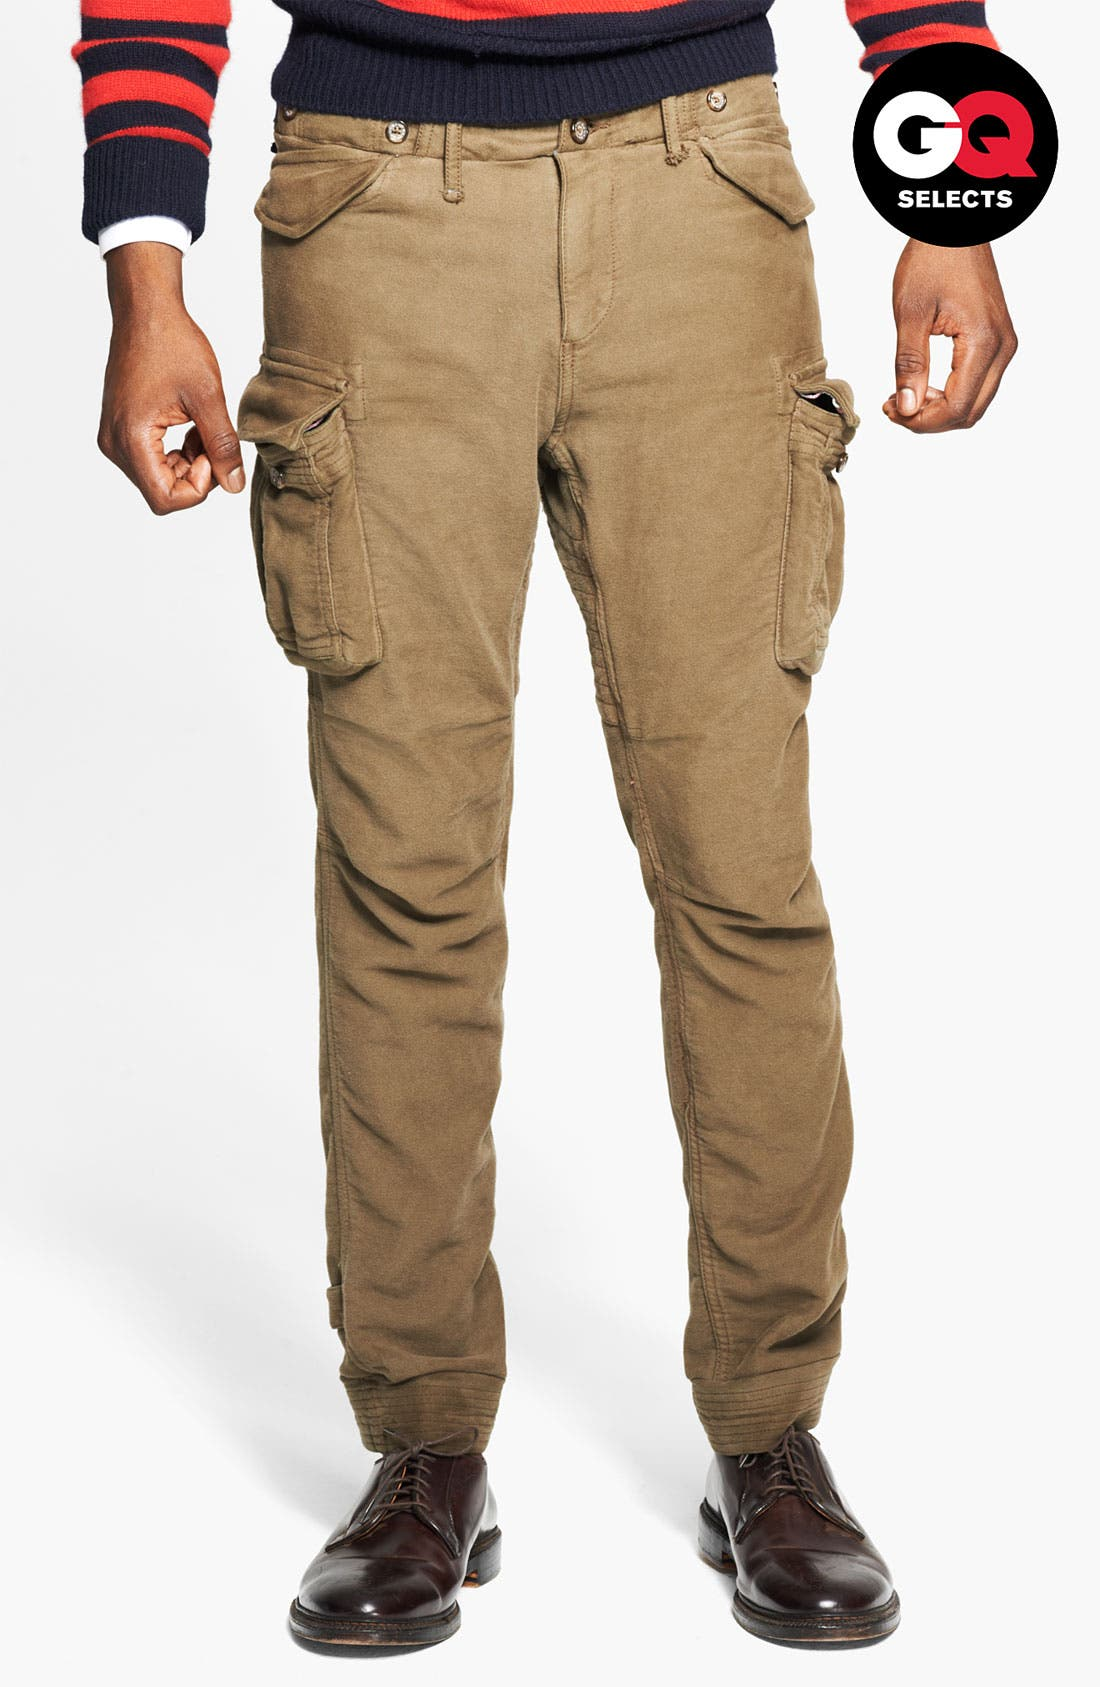 Main Image - Gant by Michael Bastian Skinny Moleskin Cotton Cargo Pants